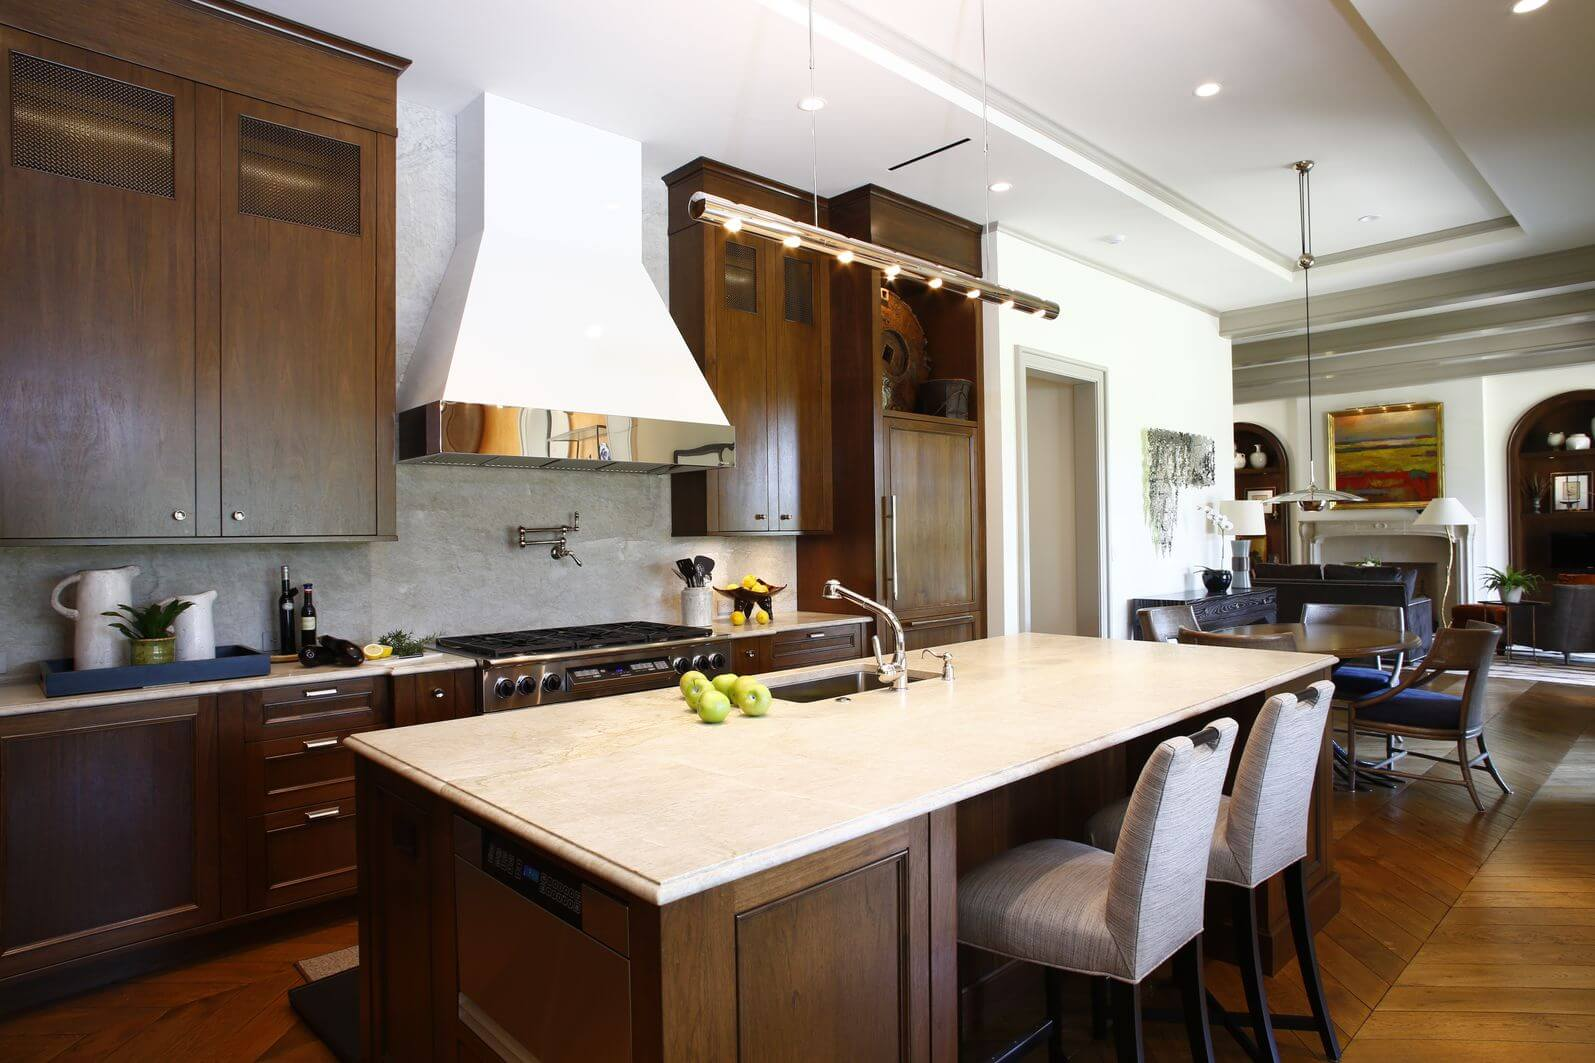 Kitchen Design Black Cabinets off white kitchen cabinets with dark floors best 20+ off white